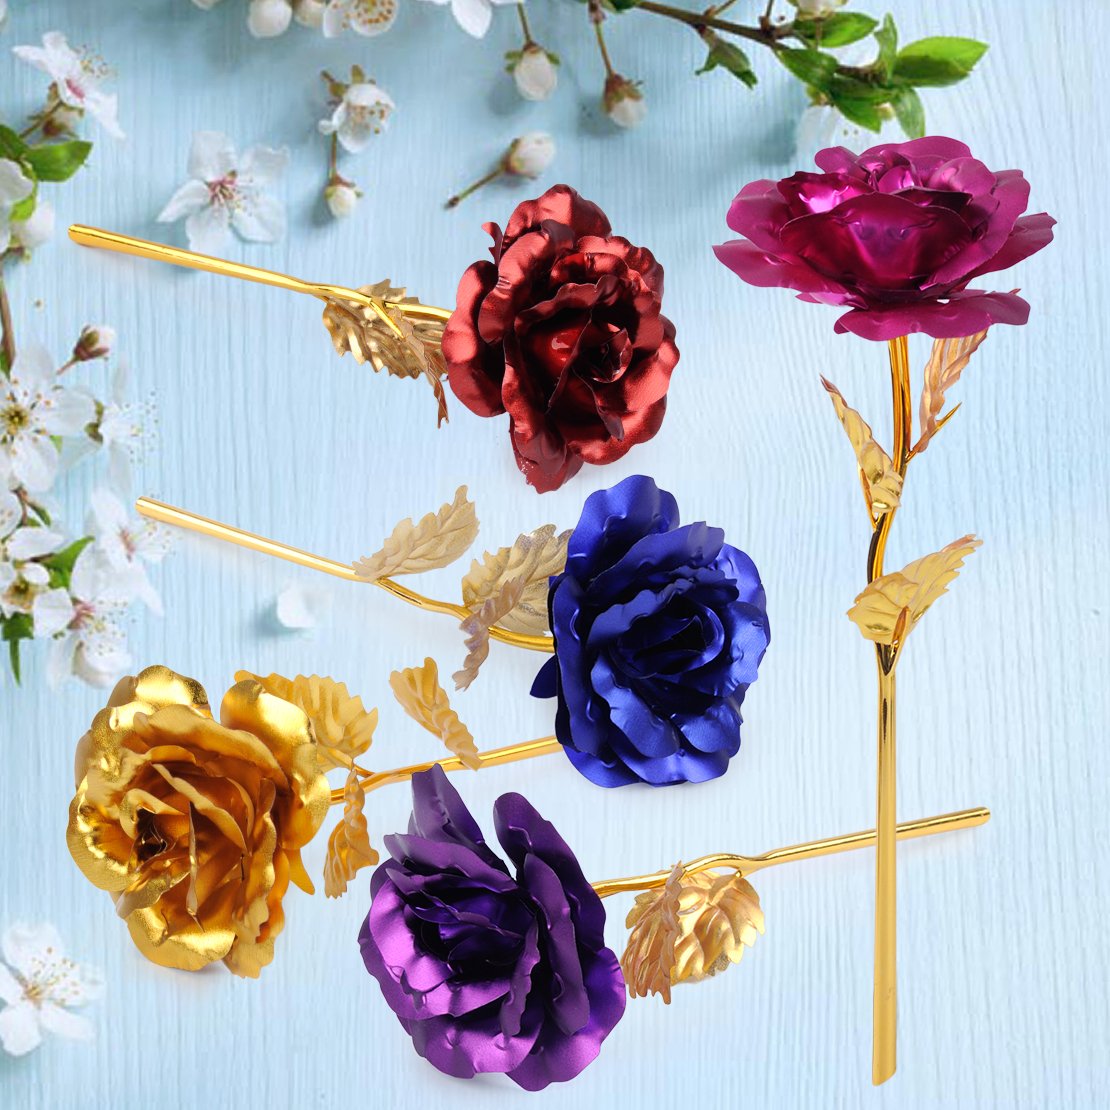 Aliexpress Com Buy Wr Romantic Rose 24k Gold Dipped: 24K Gold Foil Plated Romantic Rose Flower With Free Gift